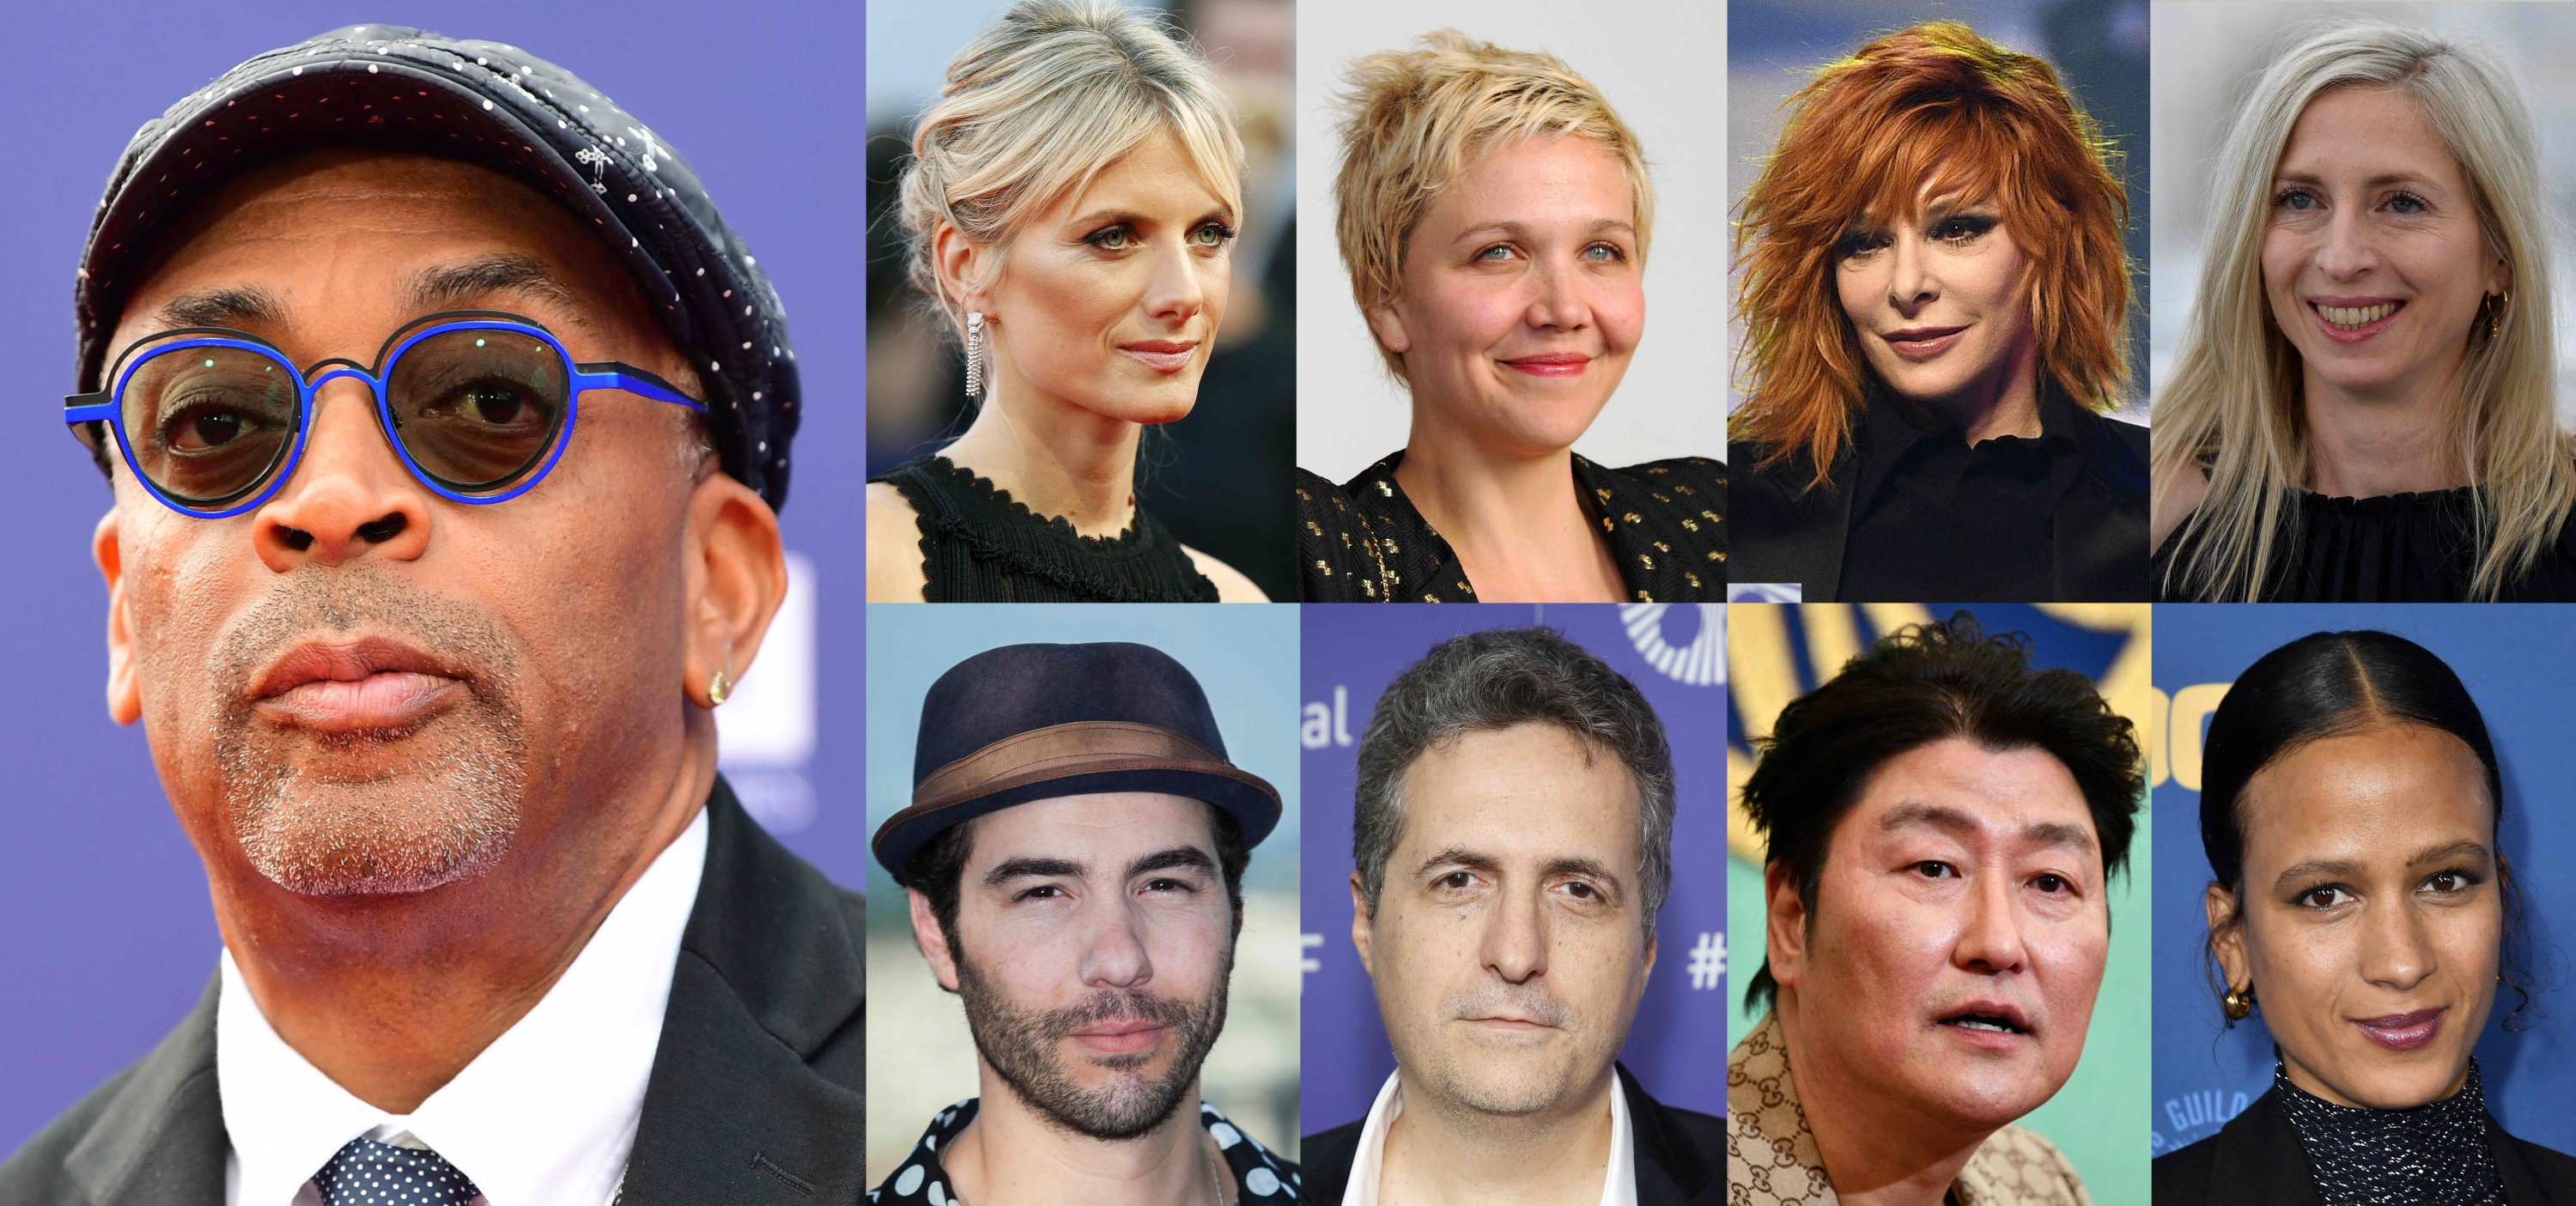 This combination of file pictures created on June 24, 2021 (from L, up to down) shows the Jury of the 74th Cannes Film Festival, including U.S. director Spike Lee, French actress and director Melanie Laurent, U.S. actress Maggie Gyllenhaal, French singer Mylene Farmer, Austrian film director Jessica Hausner, French actor Tahar Rahim, Brazilian director Kleber Mendonca Filho, South Korean actor Song Kang-ho and French movie director Mati Diop. (Photo by AFP)